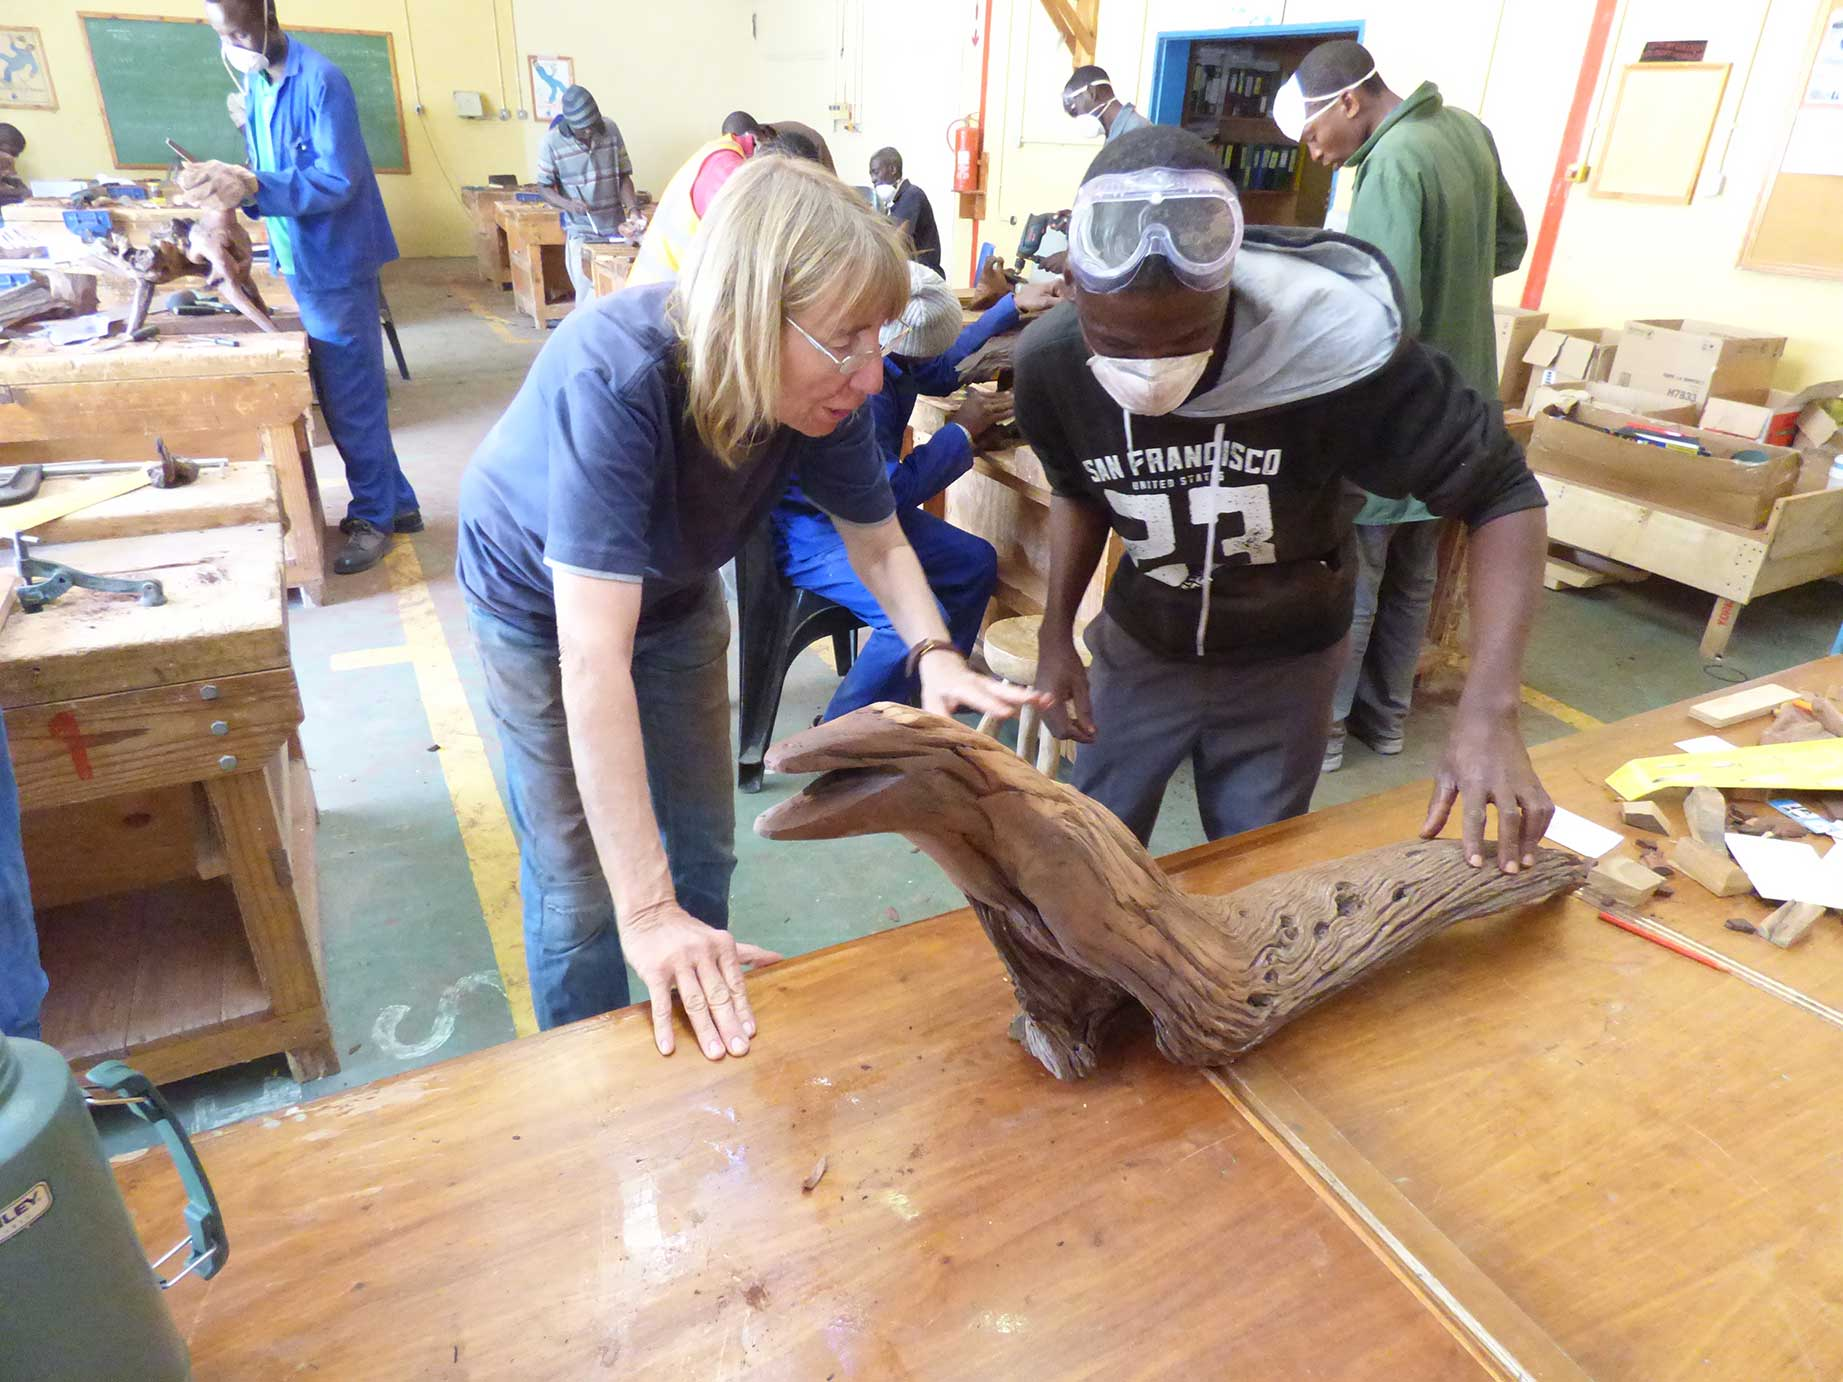 Christiane Stolhofer is discussing Kurika Diakuwa' s sculpture in the 2016 Wood Sculpture Workshop in Maun, Botswana. Both of them are leaning over a long brown reptile looking sculpture, being in deep conversation.